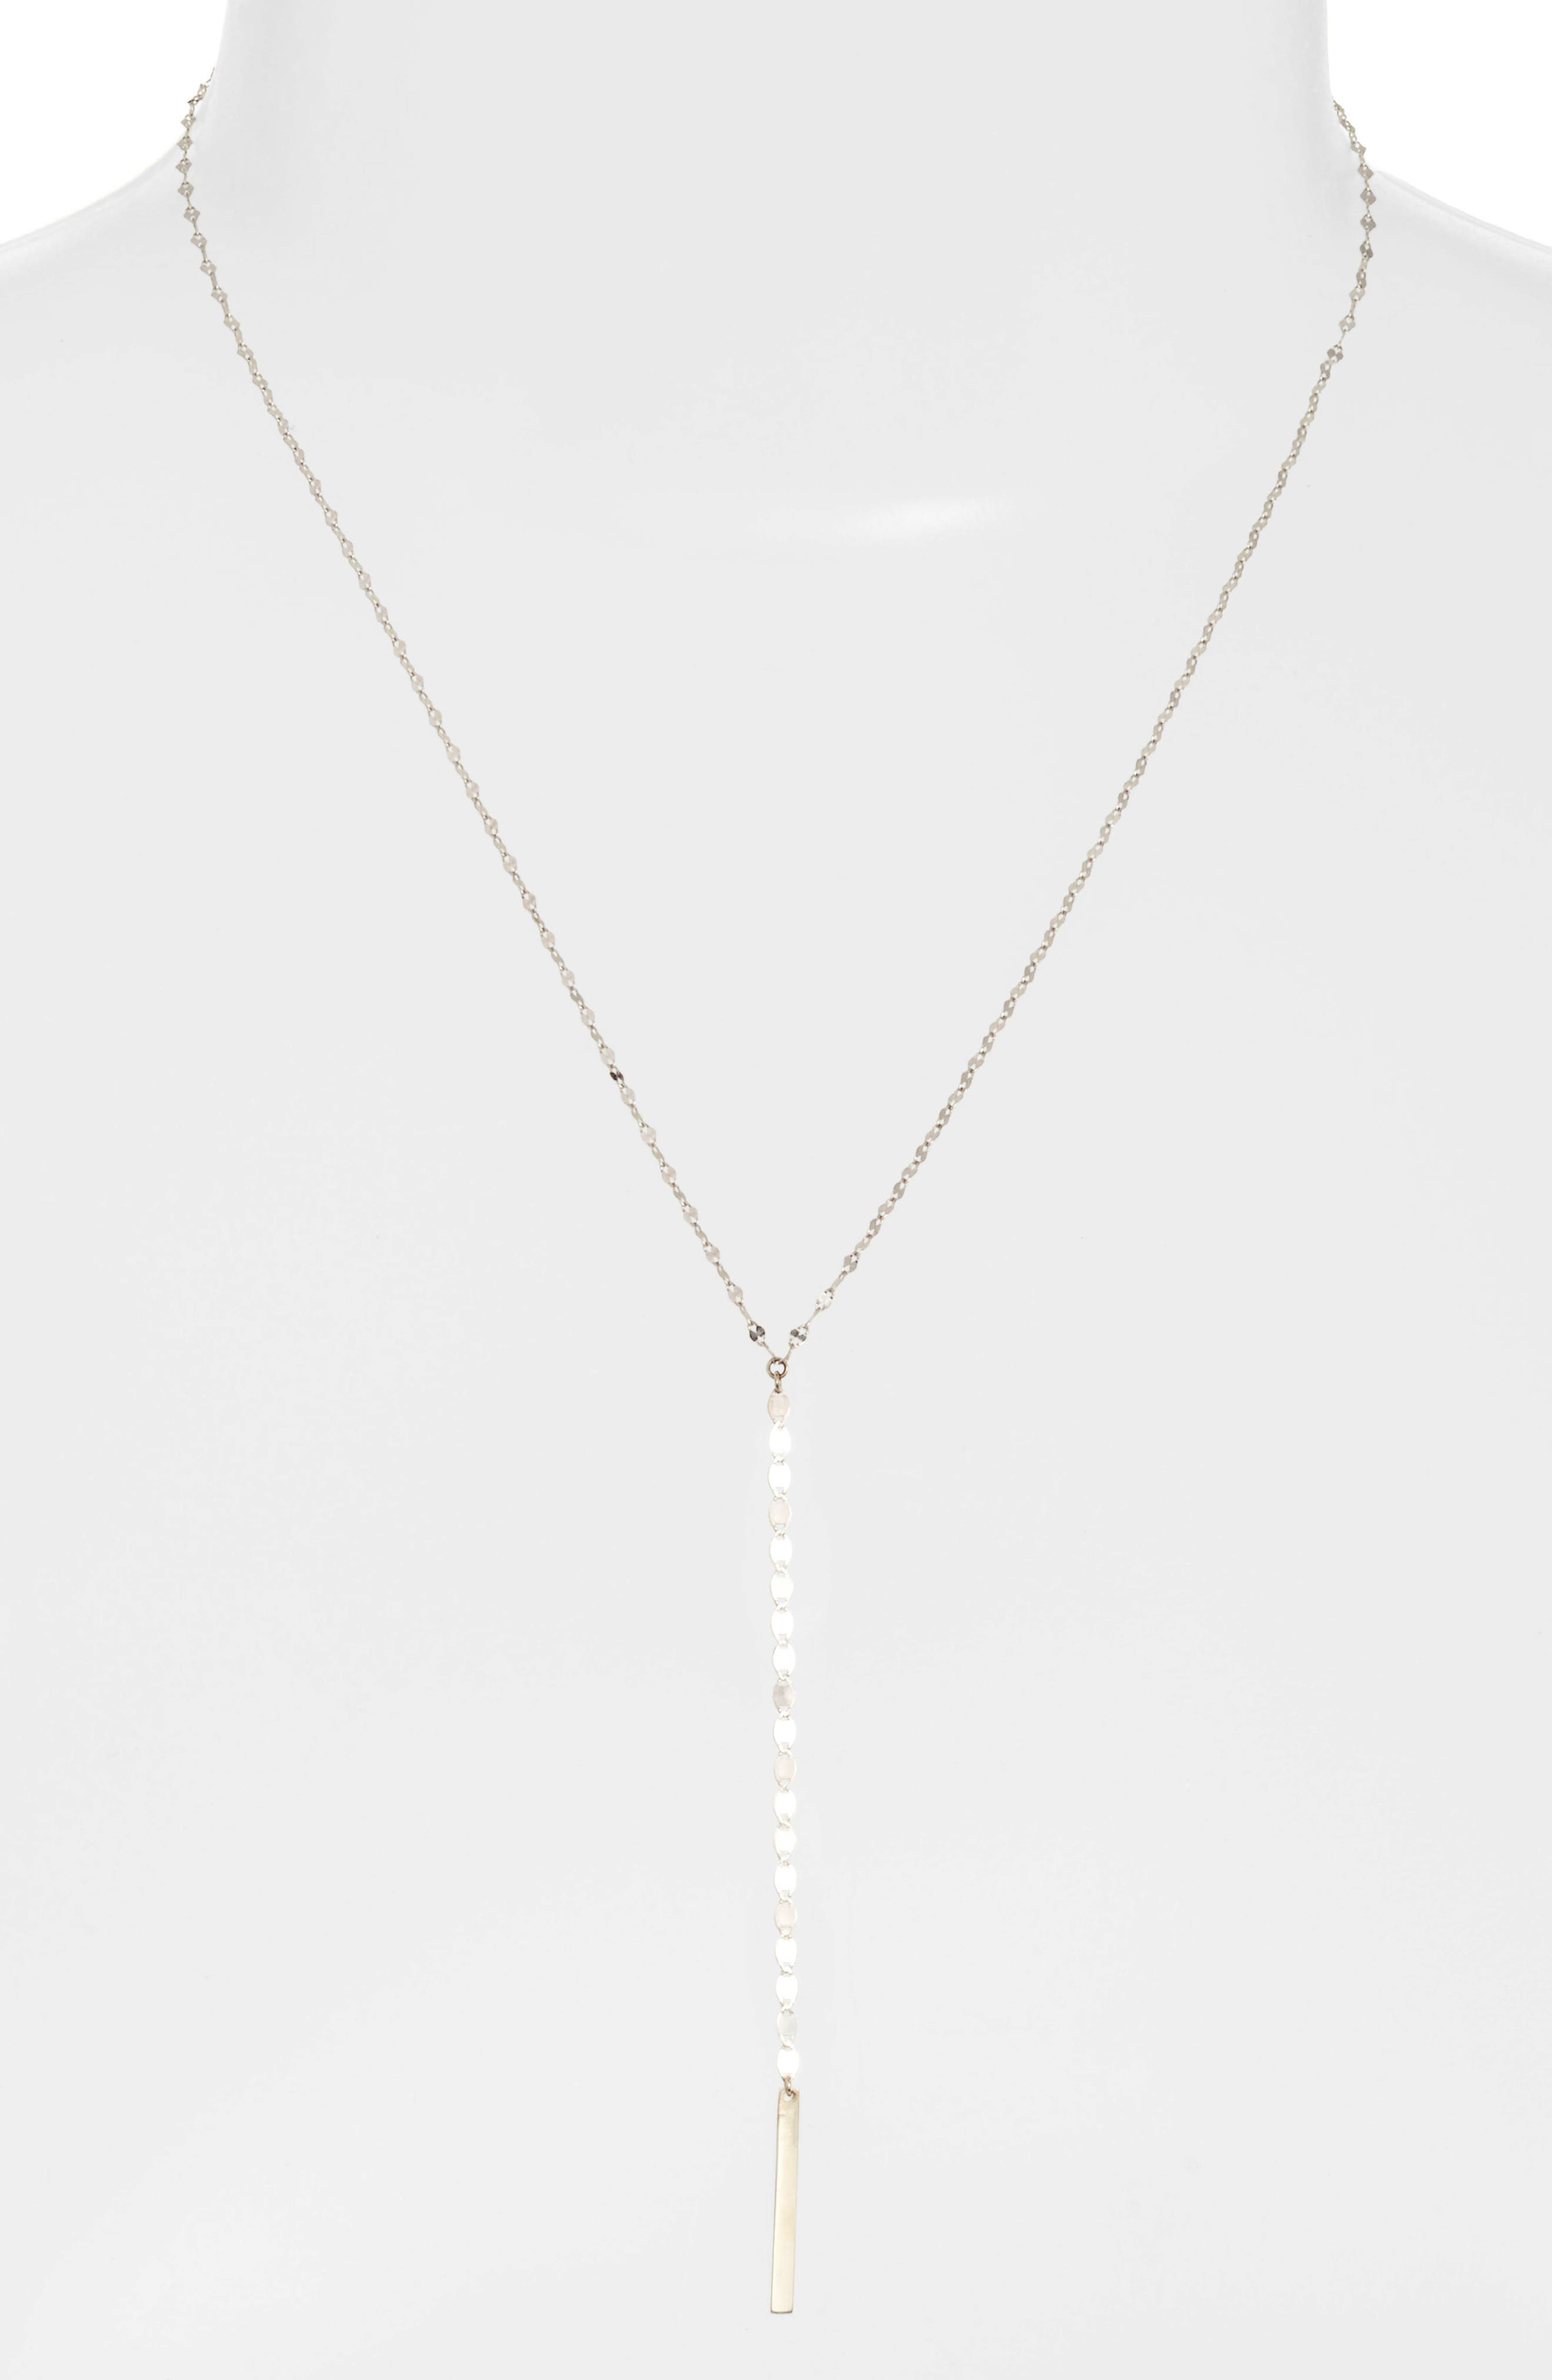 Lana Jewelry Nude Remix Bar Y-Necklace